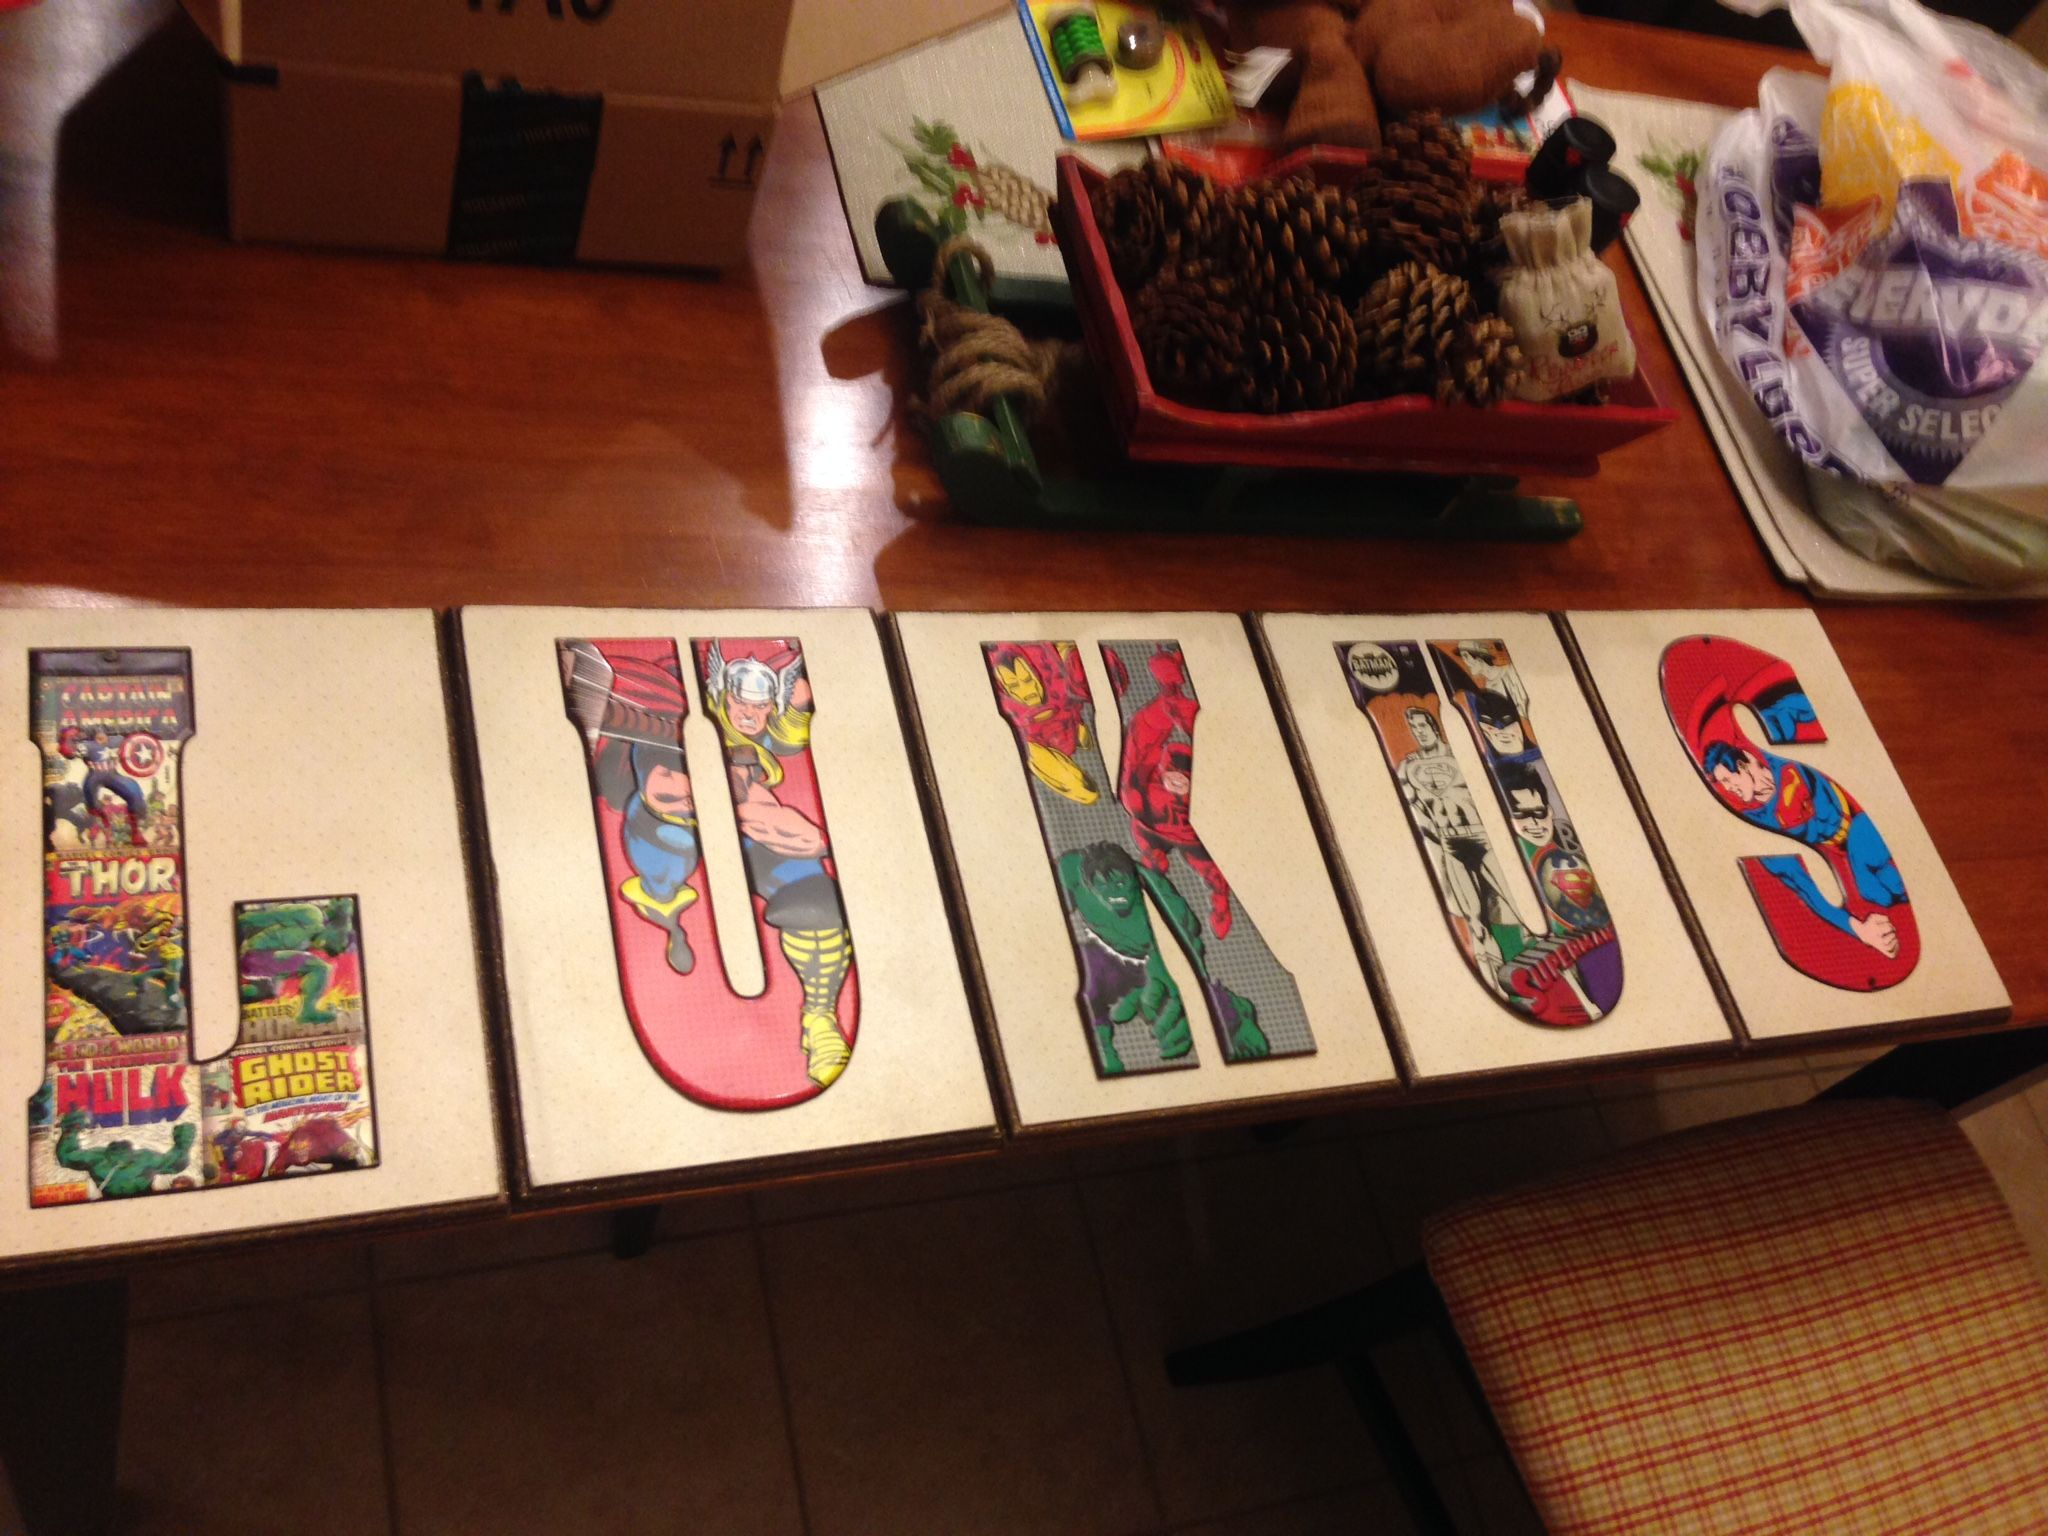 Letter Artwork Purchased Metal Letters From Hobby Lobby Wooden